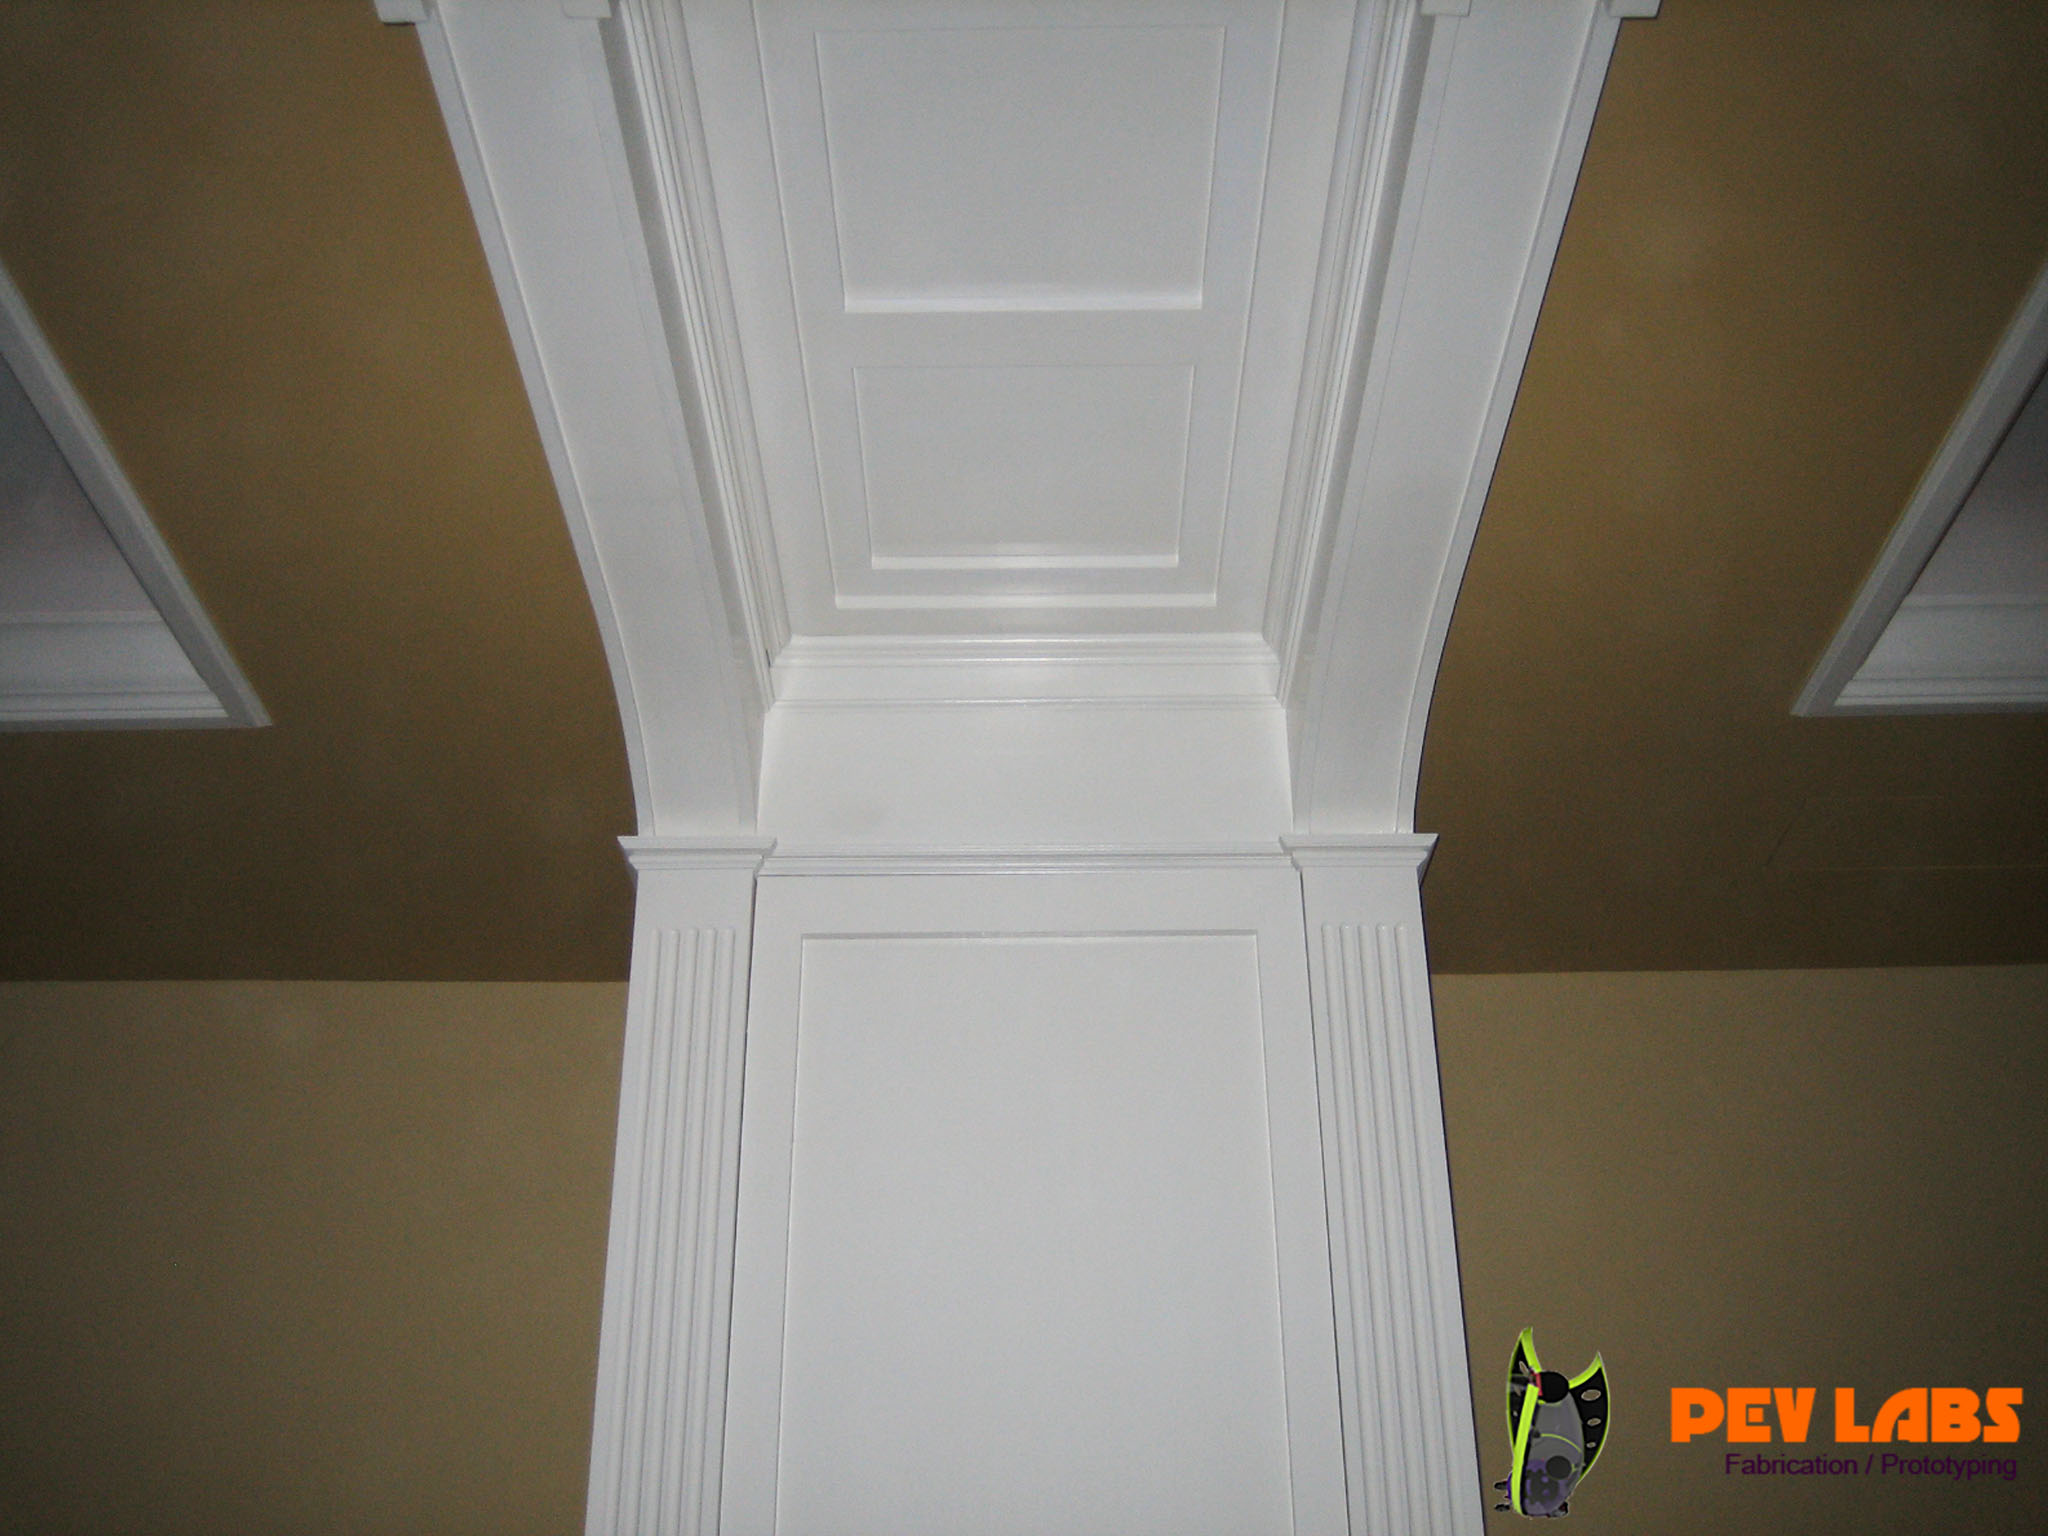 Hidden Cabinetry in Archway Panels and Ceiling Panel